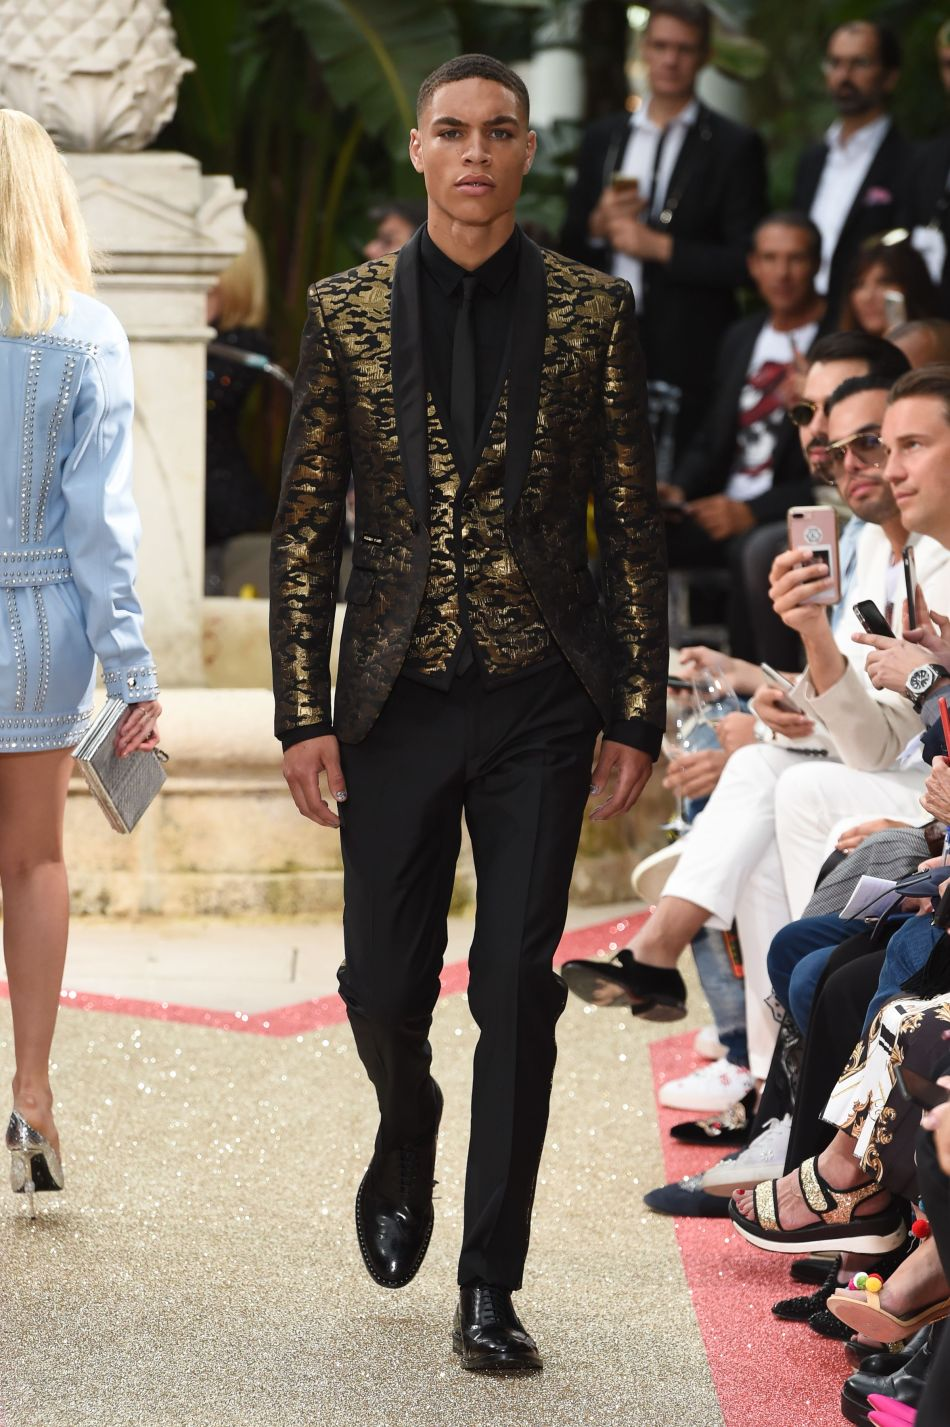 International fashion designer Philipp Plein presents Dynasty the Resort 2019 in Cannes.